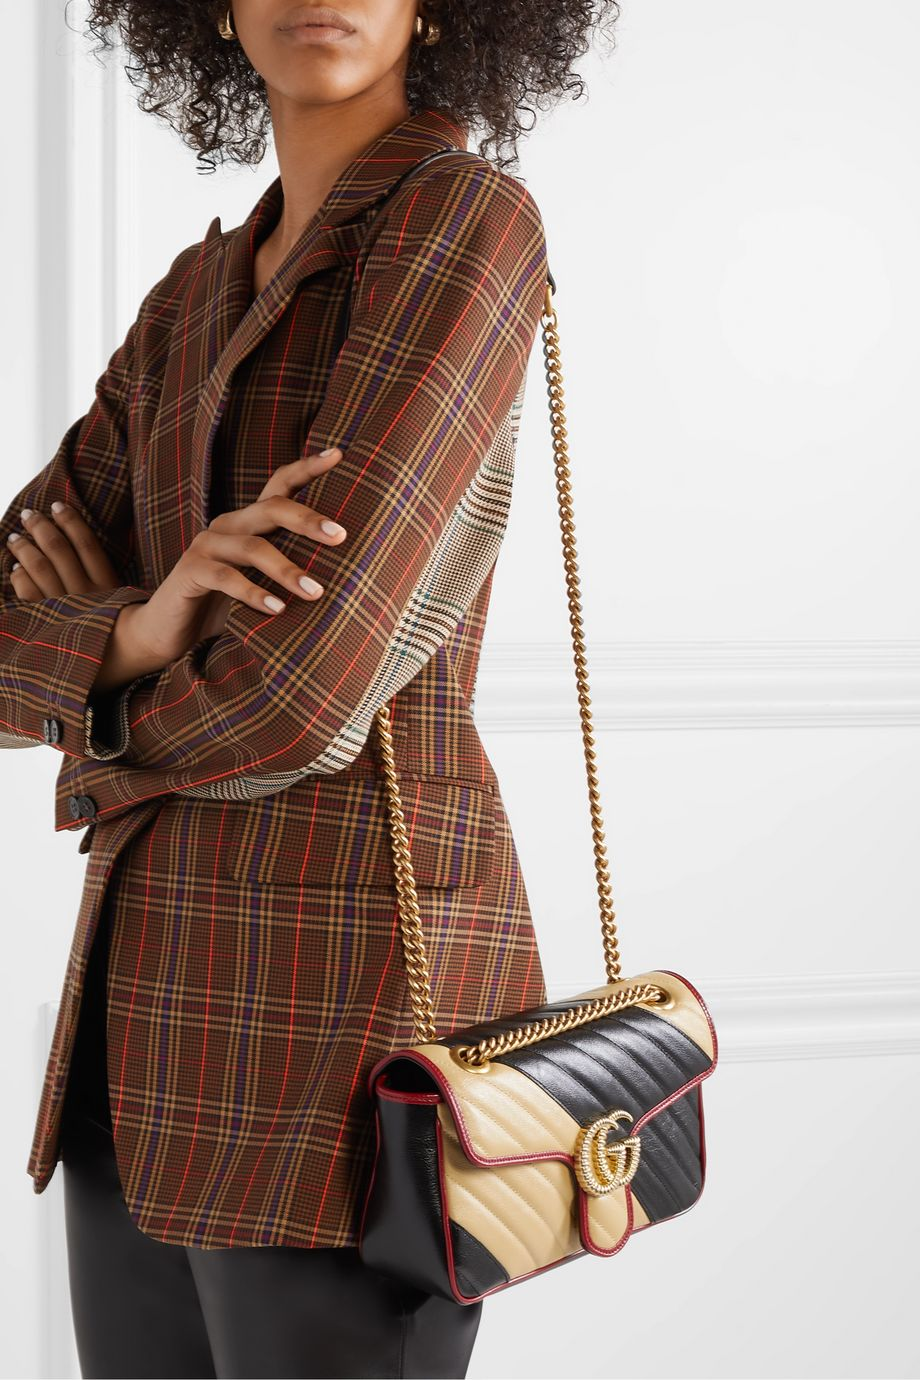 Gucci GG Marmont small color-block quilted leather shoulder bag